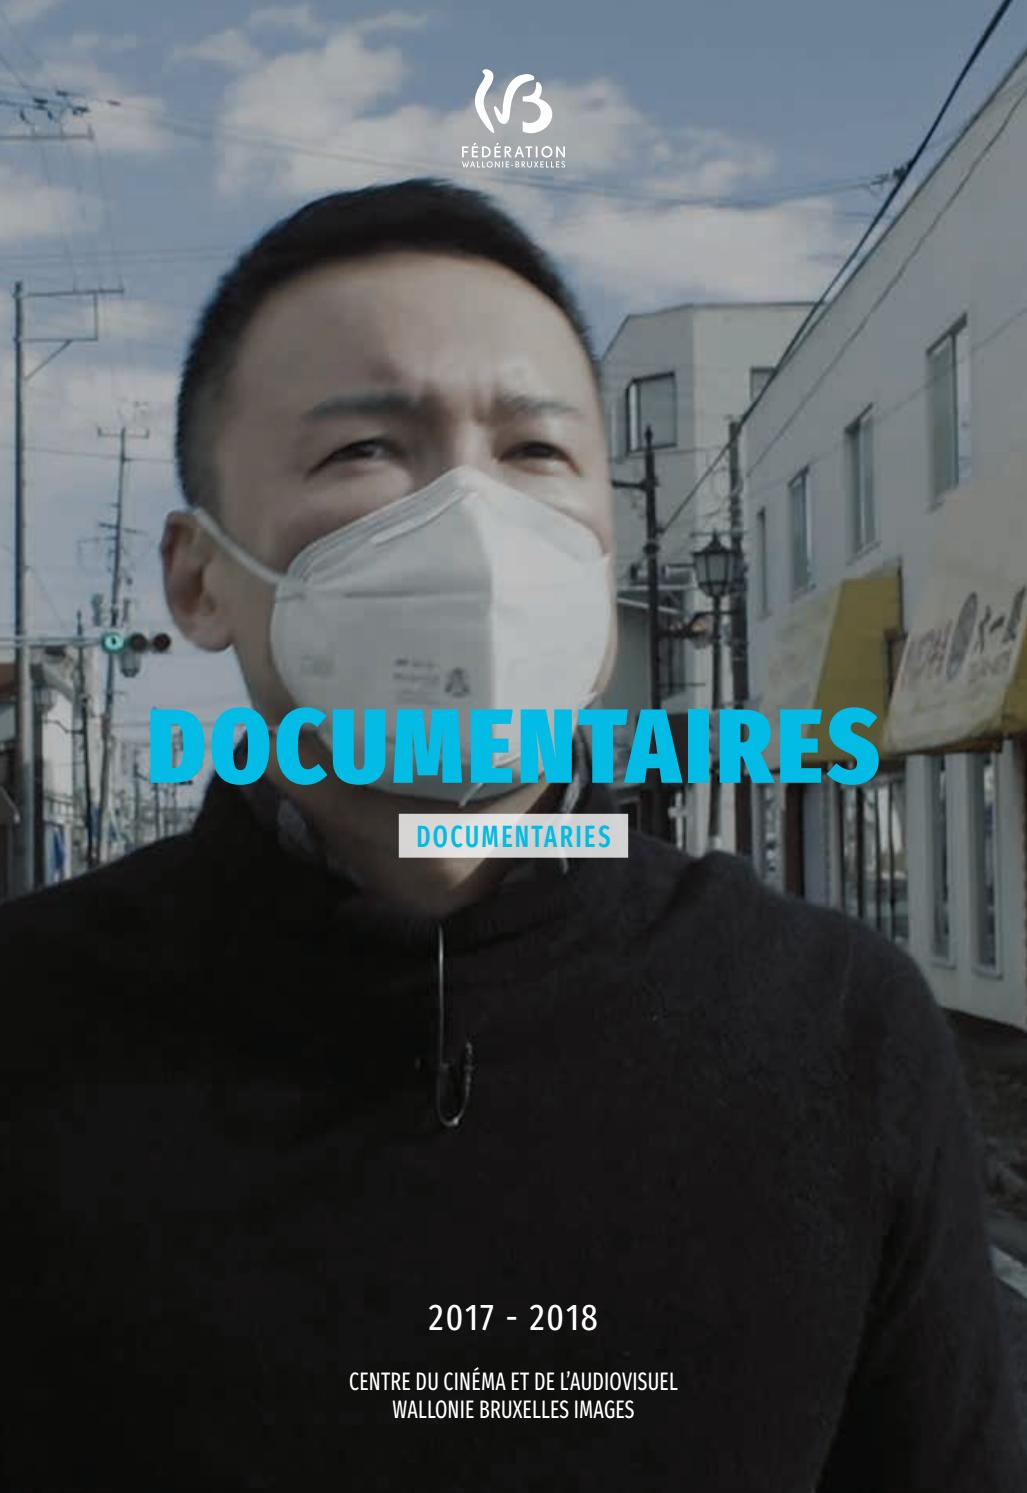 Catalogue Des Documentaires 2017 2018 By Centre Du Cinma Et De LAudiovisuel